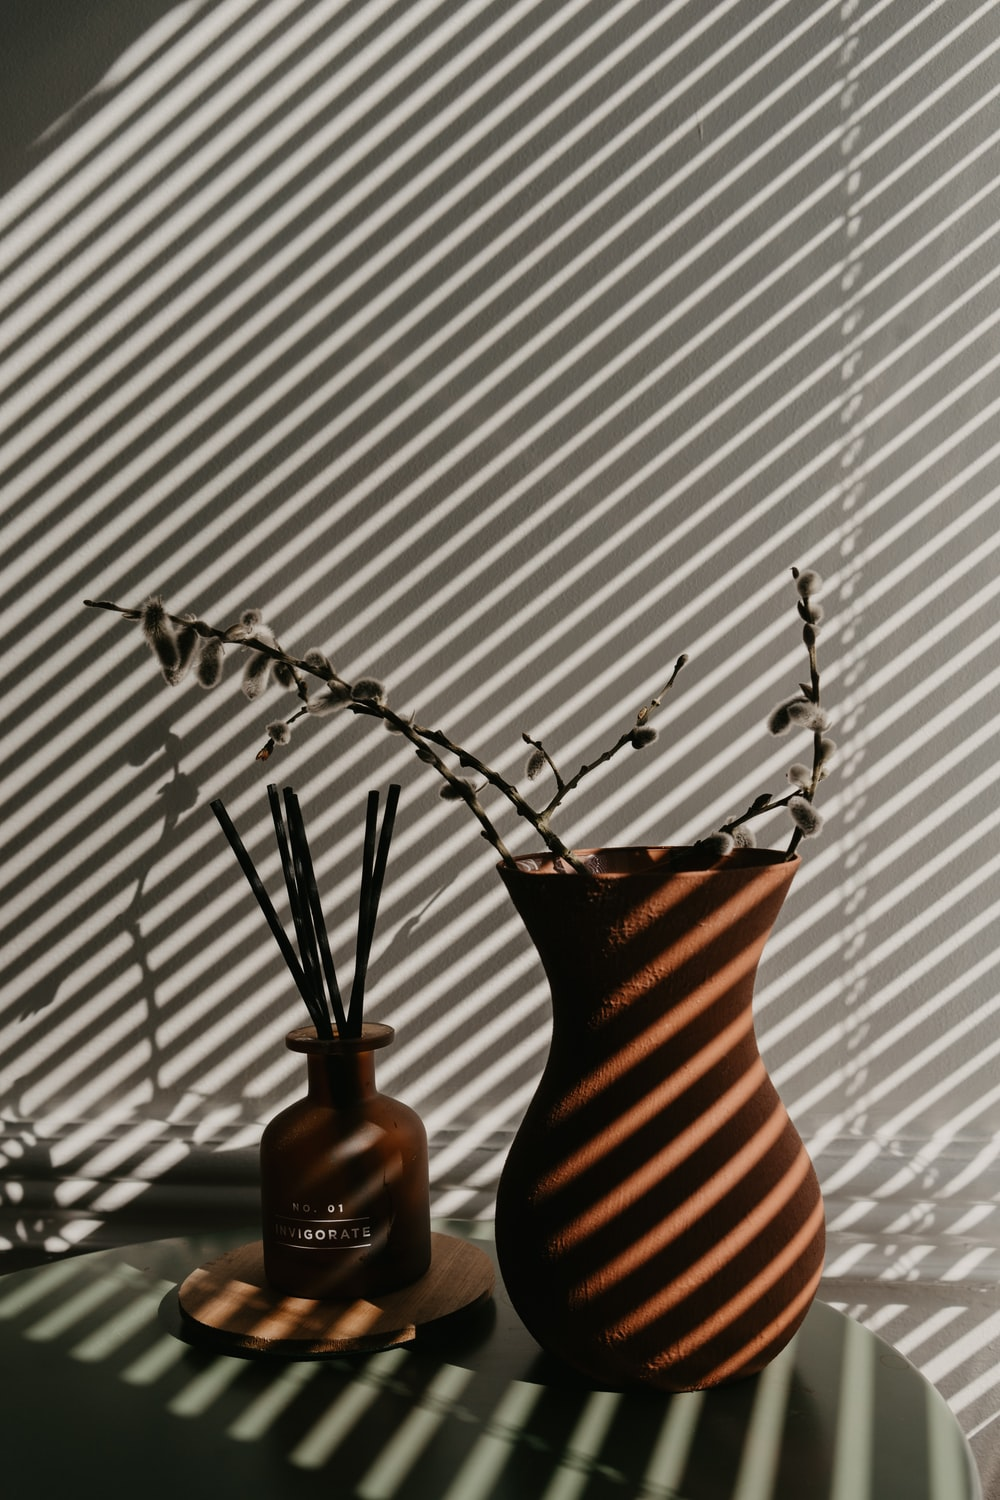 brown ceramic vase with silver spoon